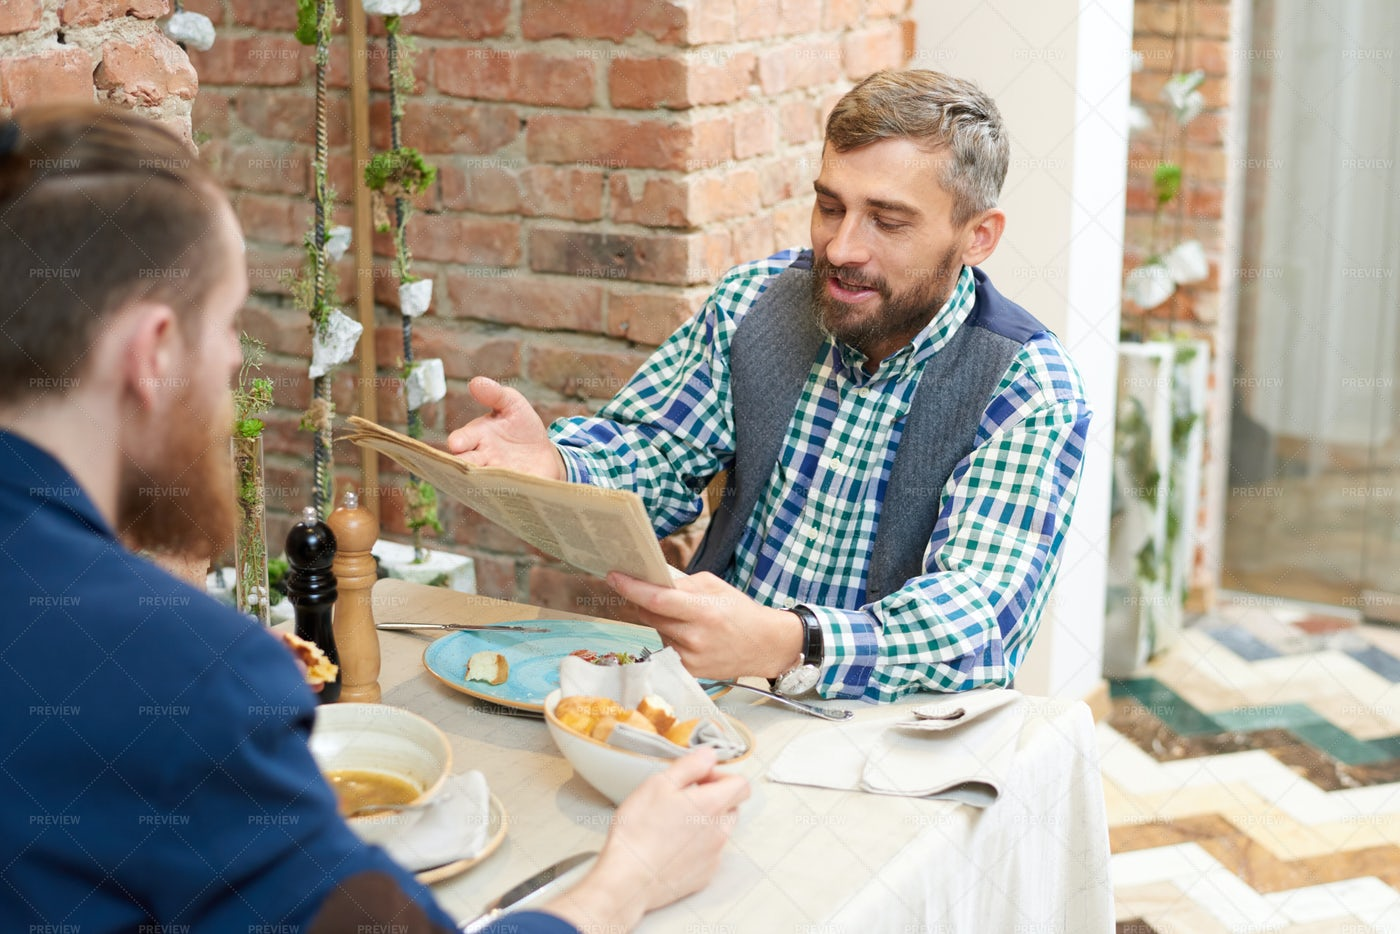 Discussing Newspaper Article With...: Stock Photos